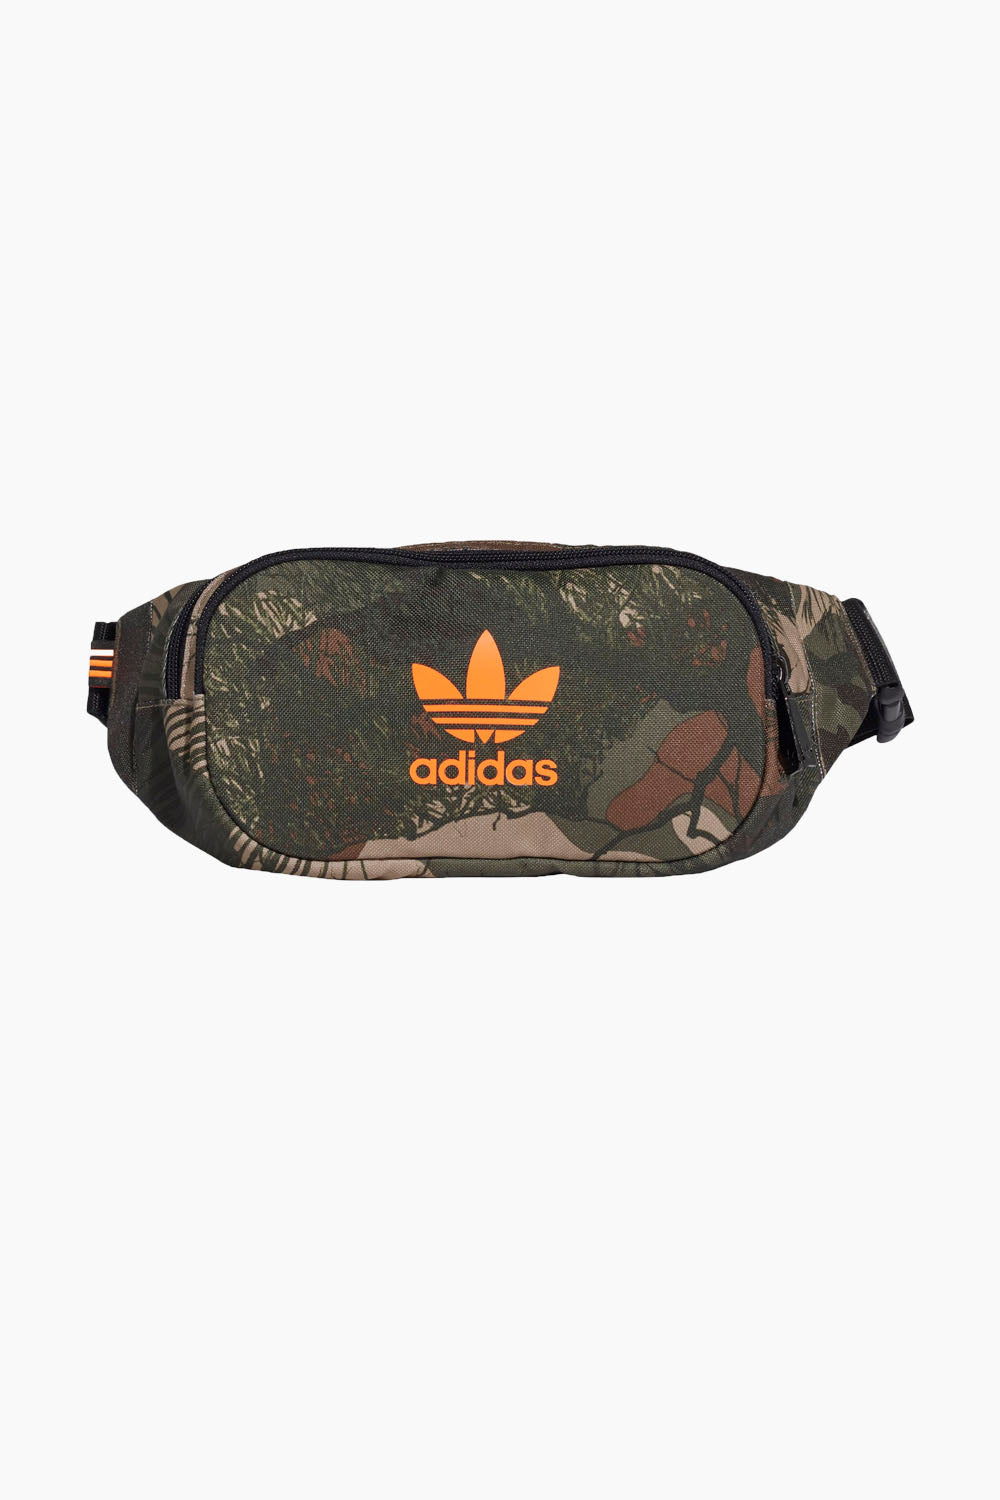 Camo Waistbag FT9304 - Camo - Adidas Originals - Camouflage One Size